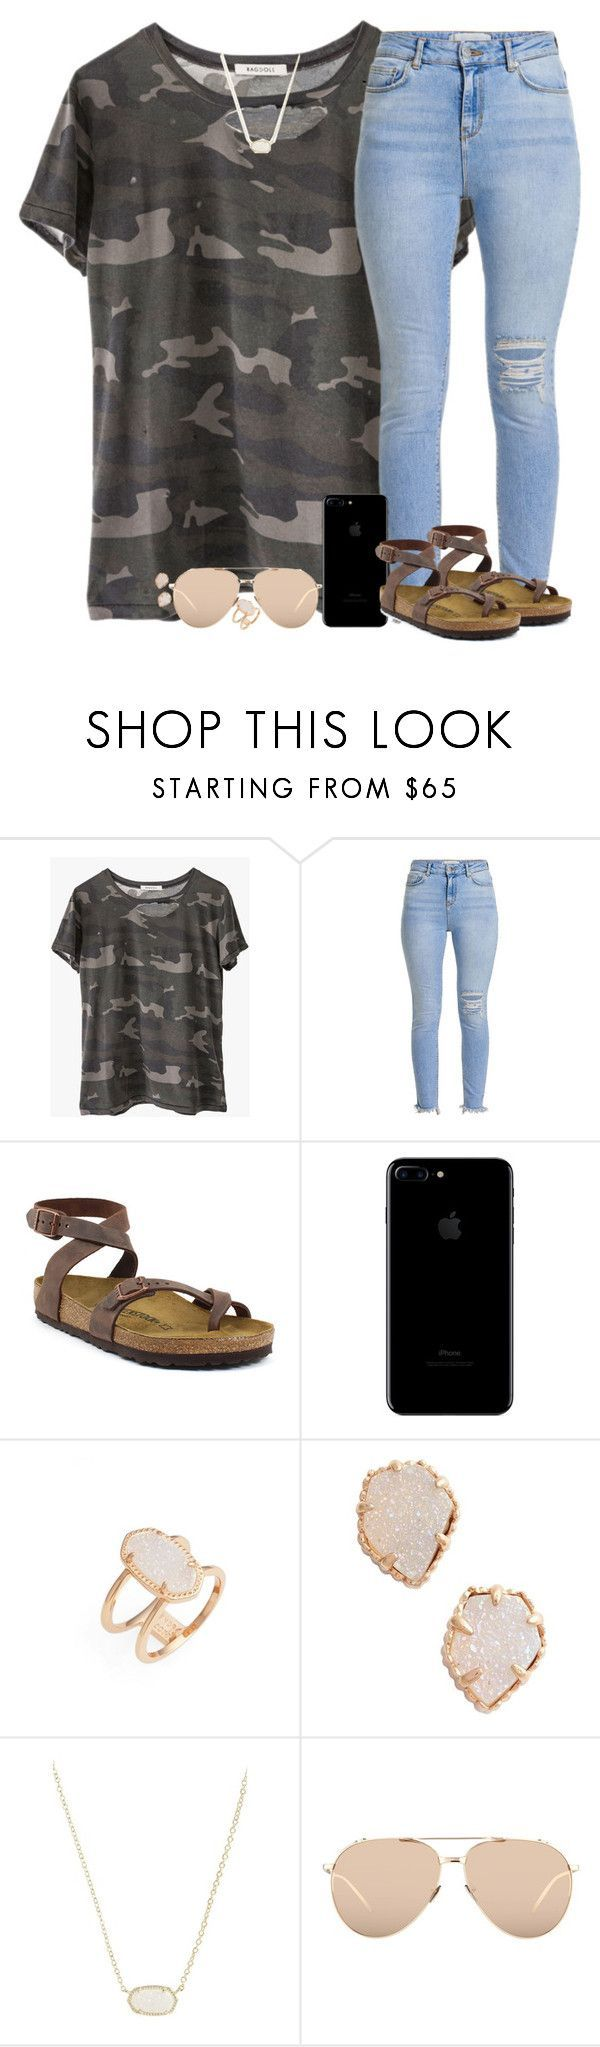 """"" by southernstruttin ❤ liked on Polyvore featuring Ragdoll, Birkenstock, Kendra Scott and Linda Farrow"